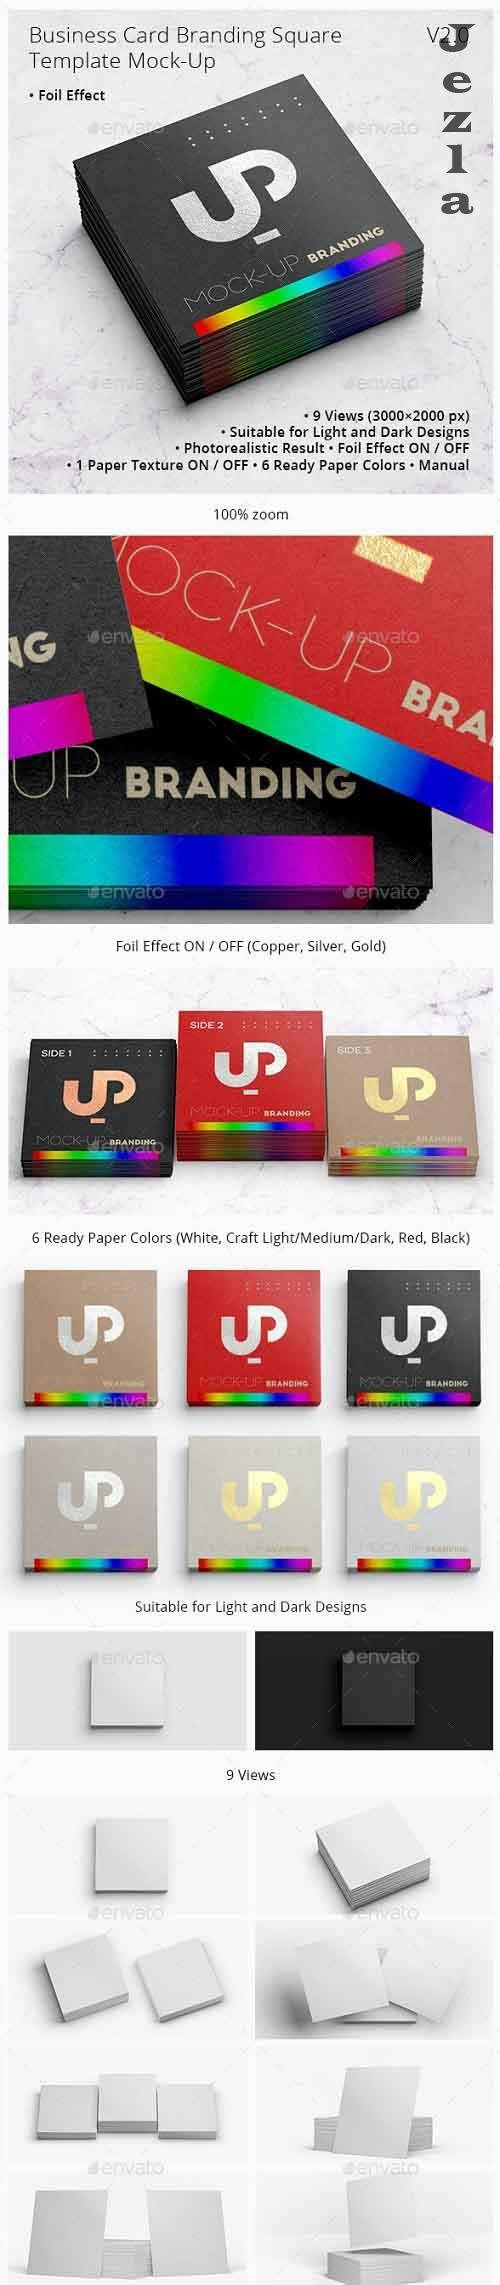 Business Card Branding with Foil effect Square Template Mock-Up V2.0 28422485